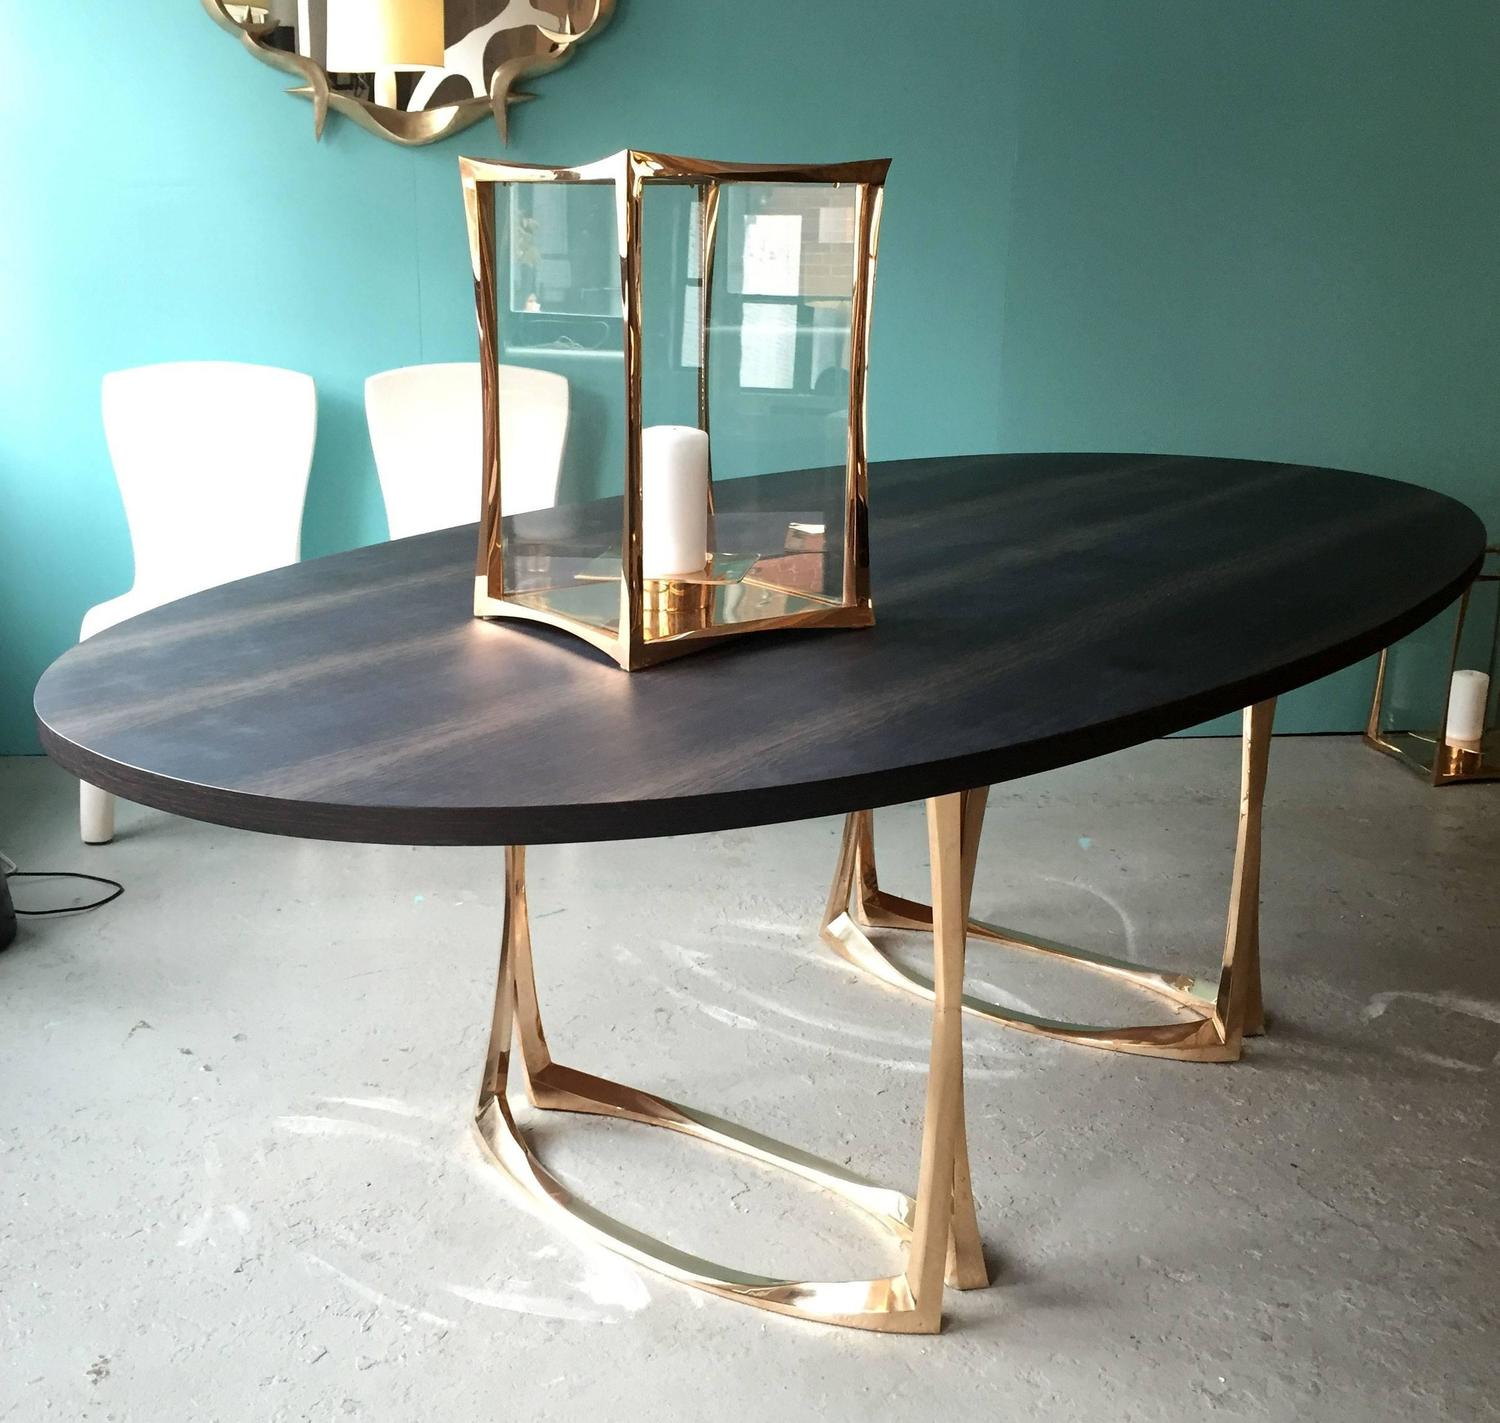 Dining Table with Bronze Legs and Marsh Oak Top by  : AMTablez from www.1stdibs.com size 1500 x 1423 jpeg 179kB